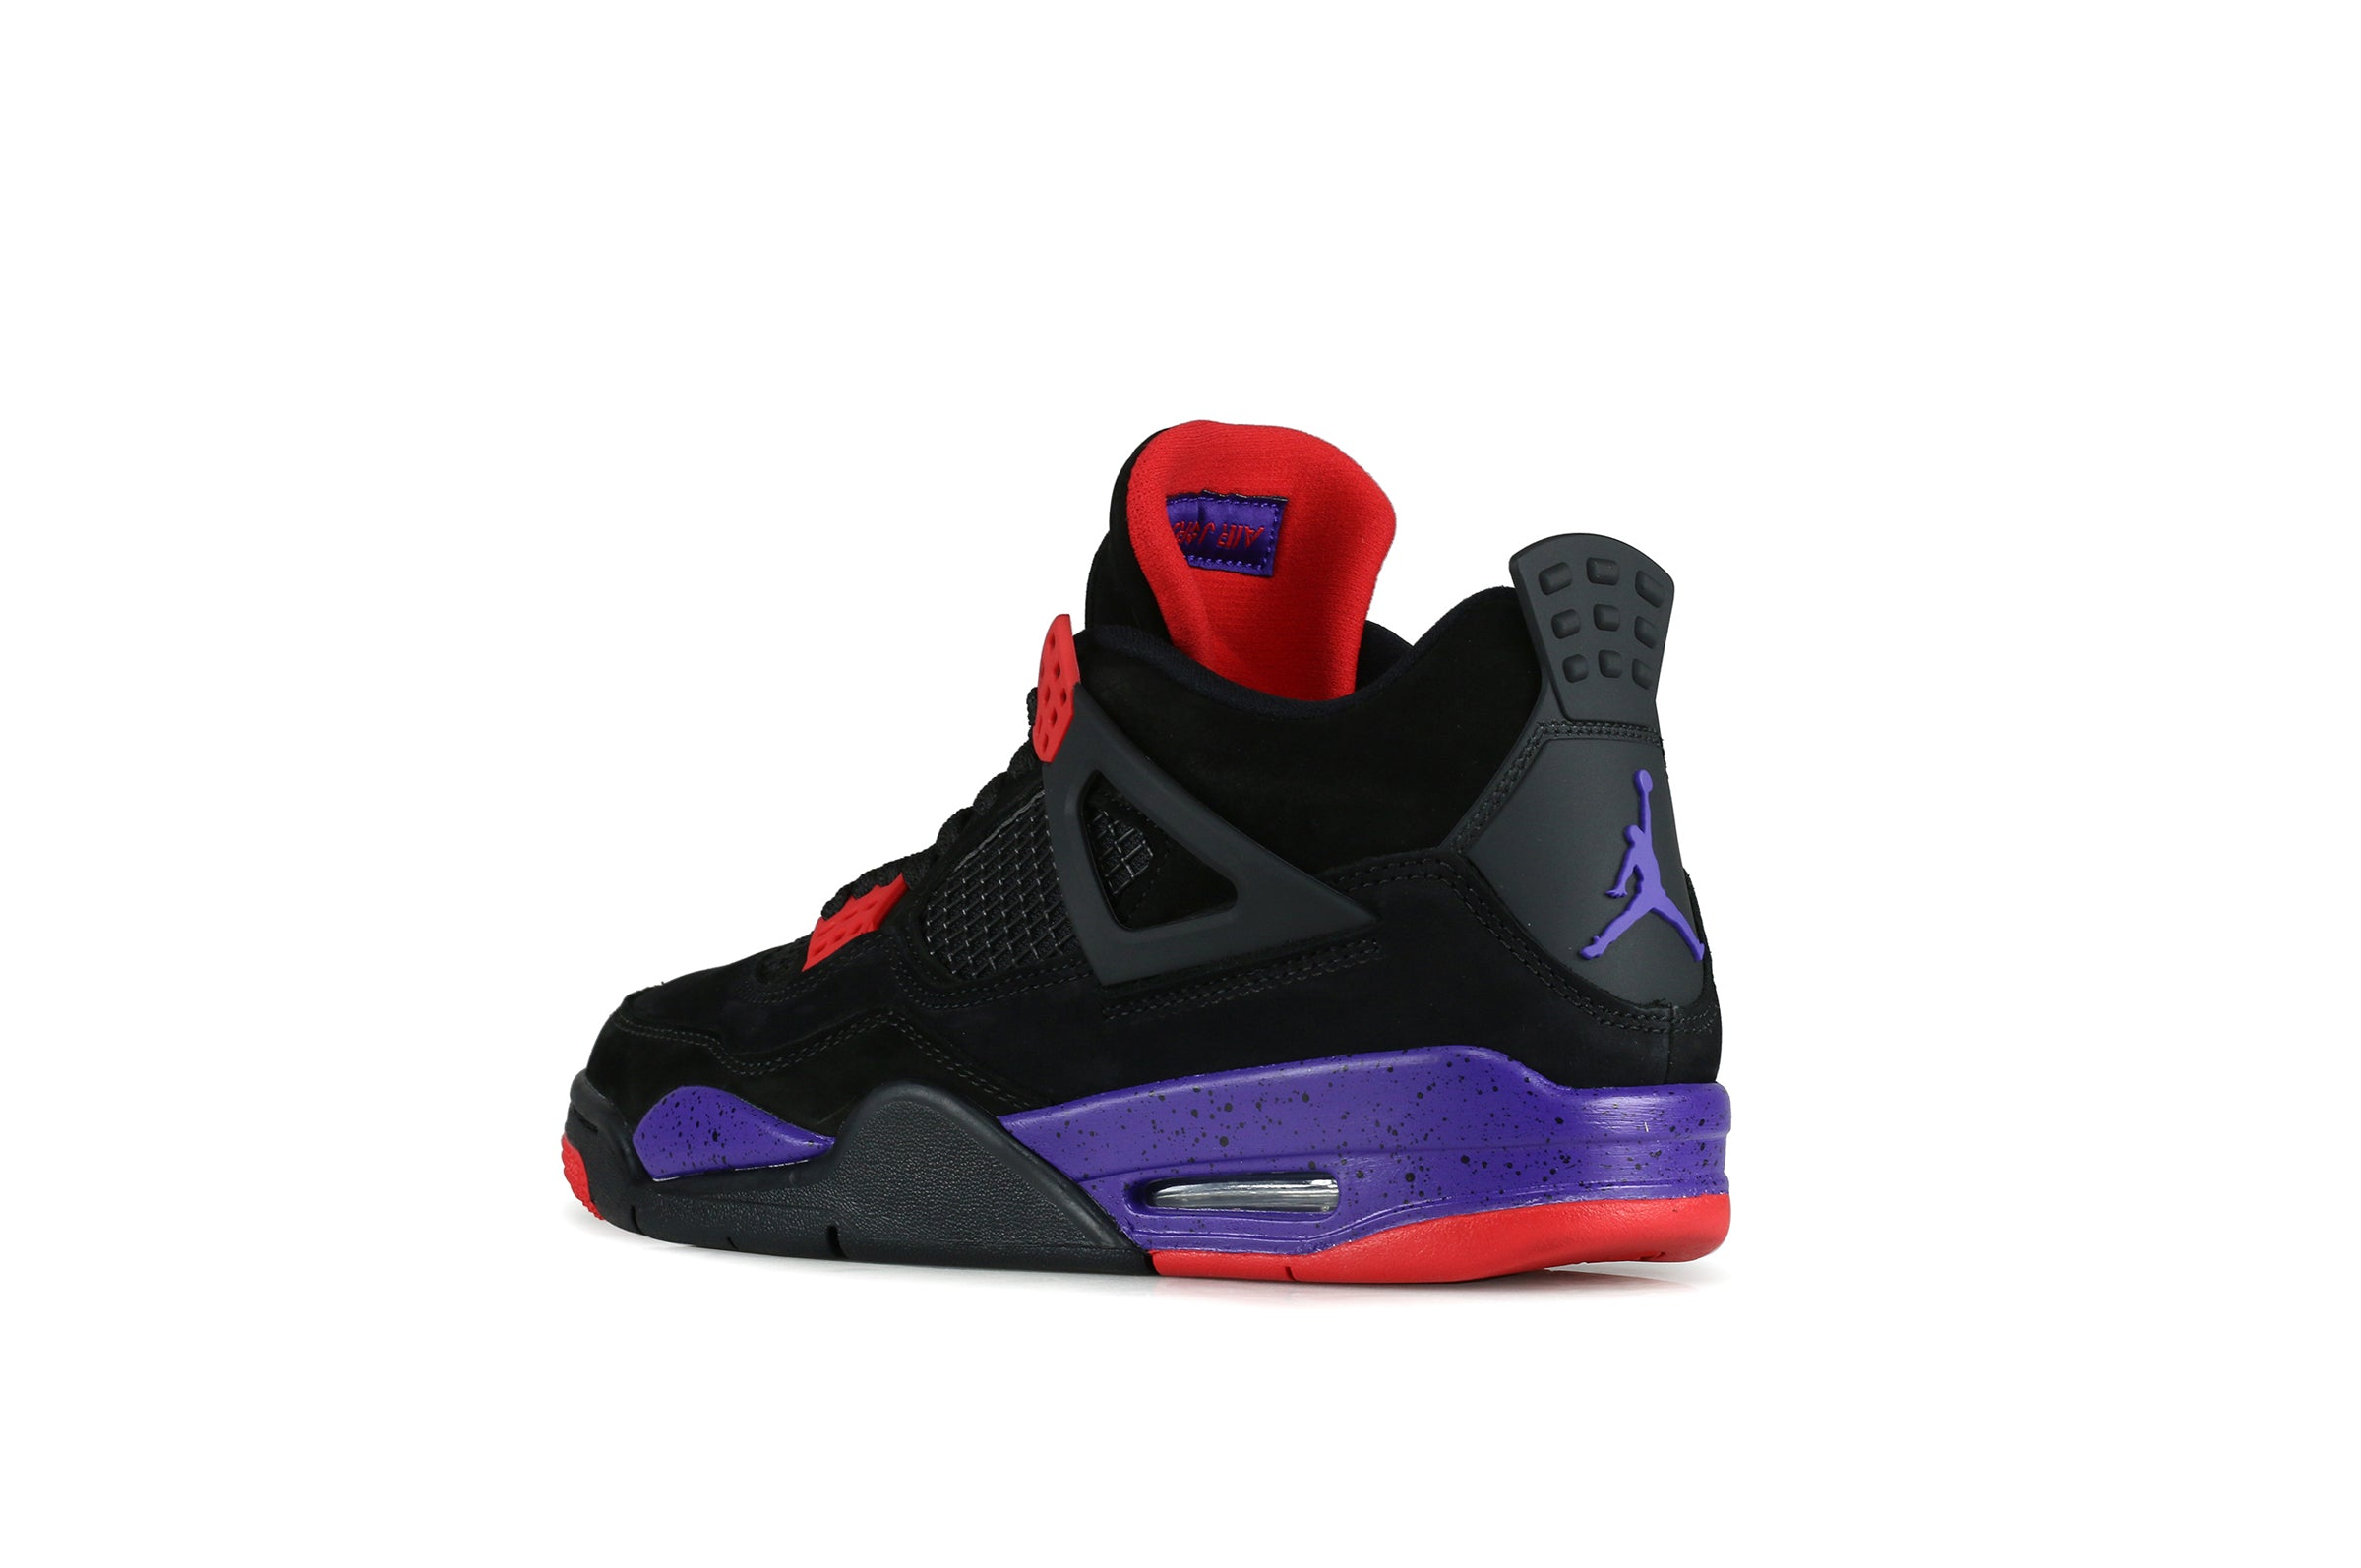 Nike Air Jordan 4 Retro Raptors NRG